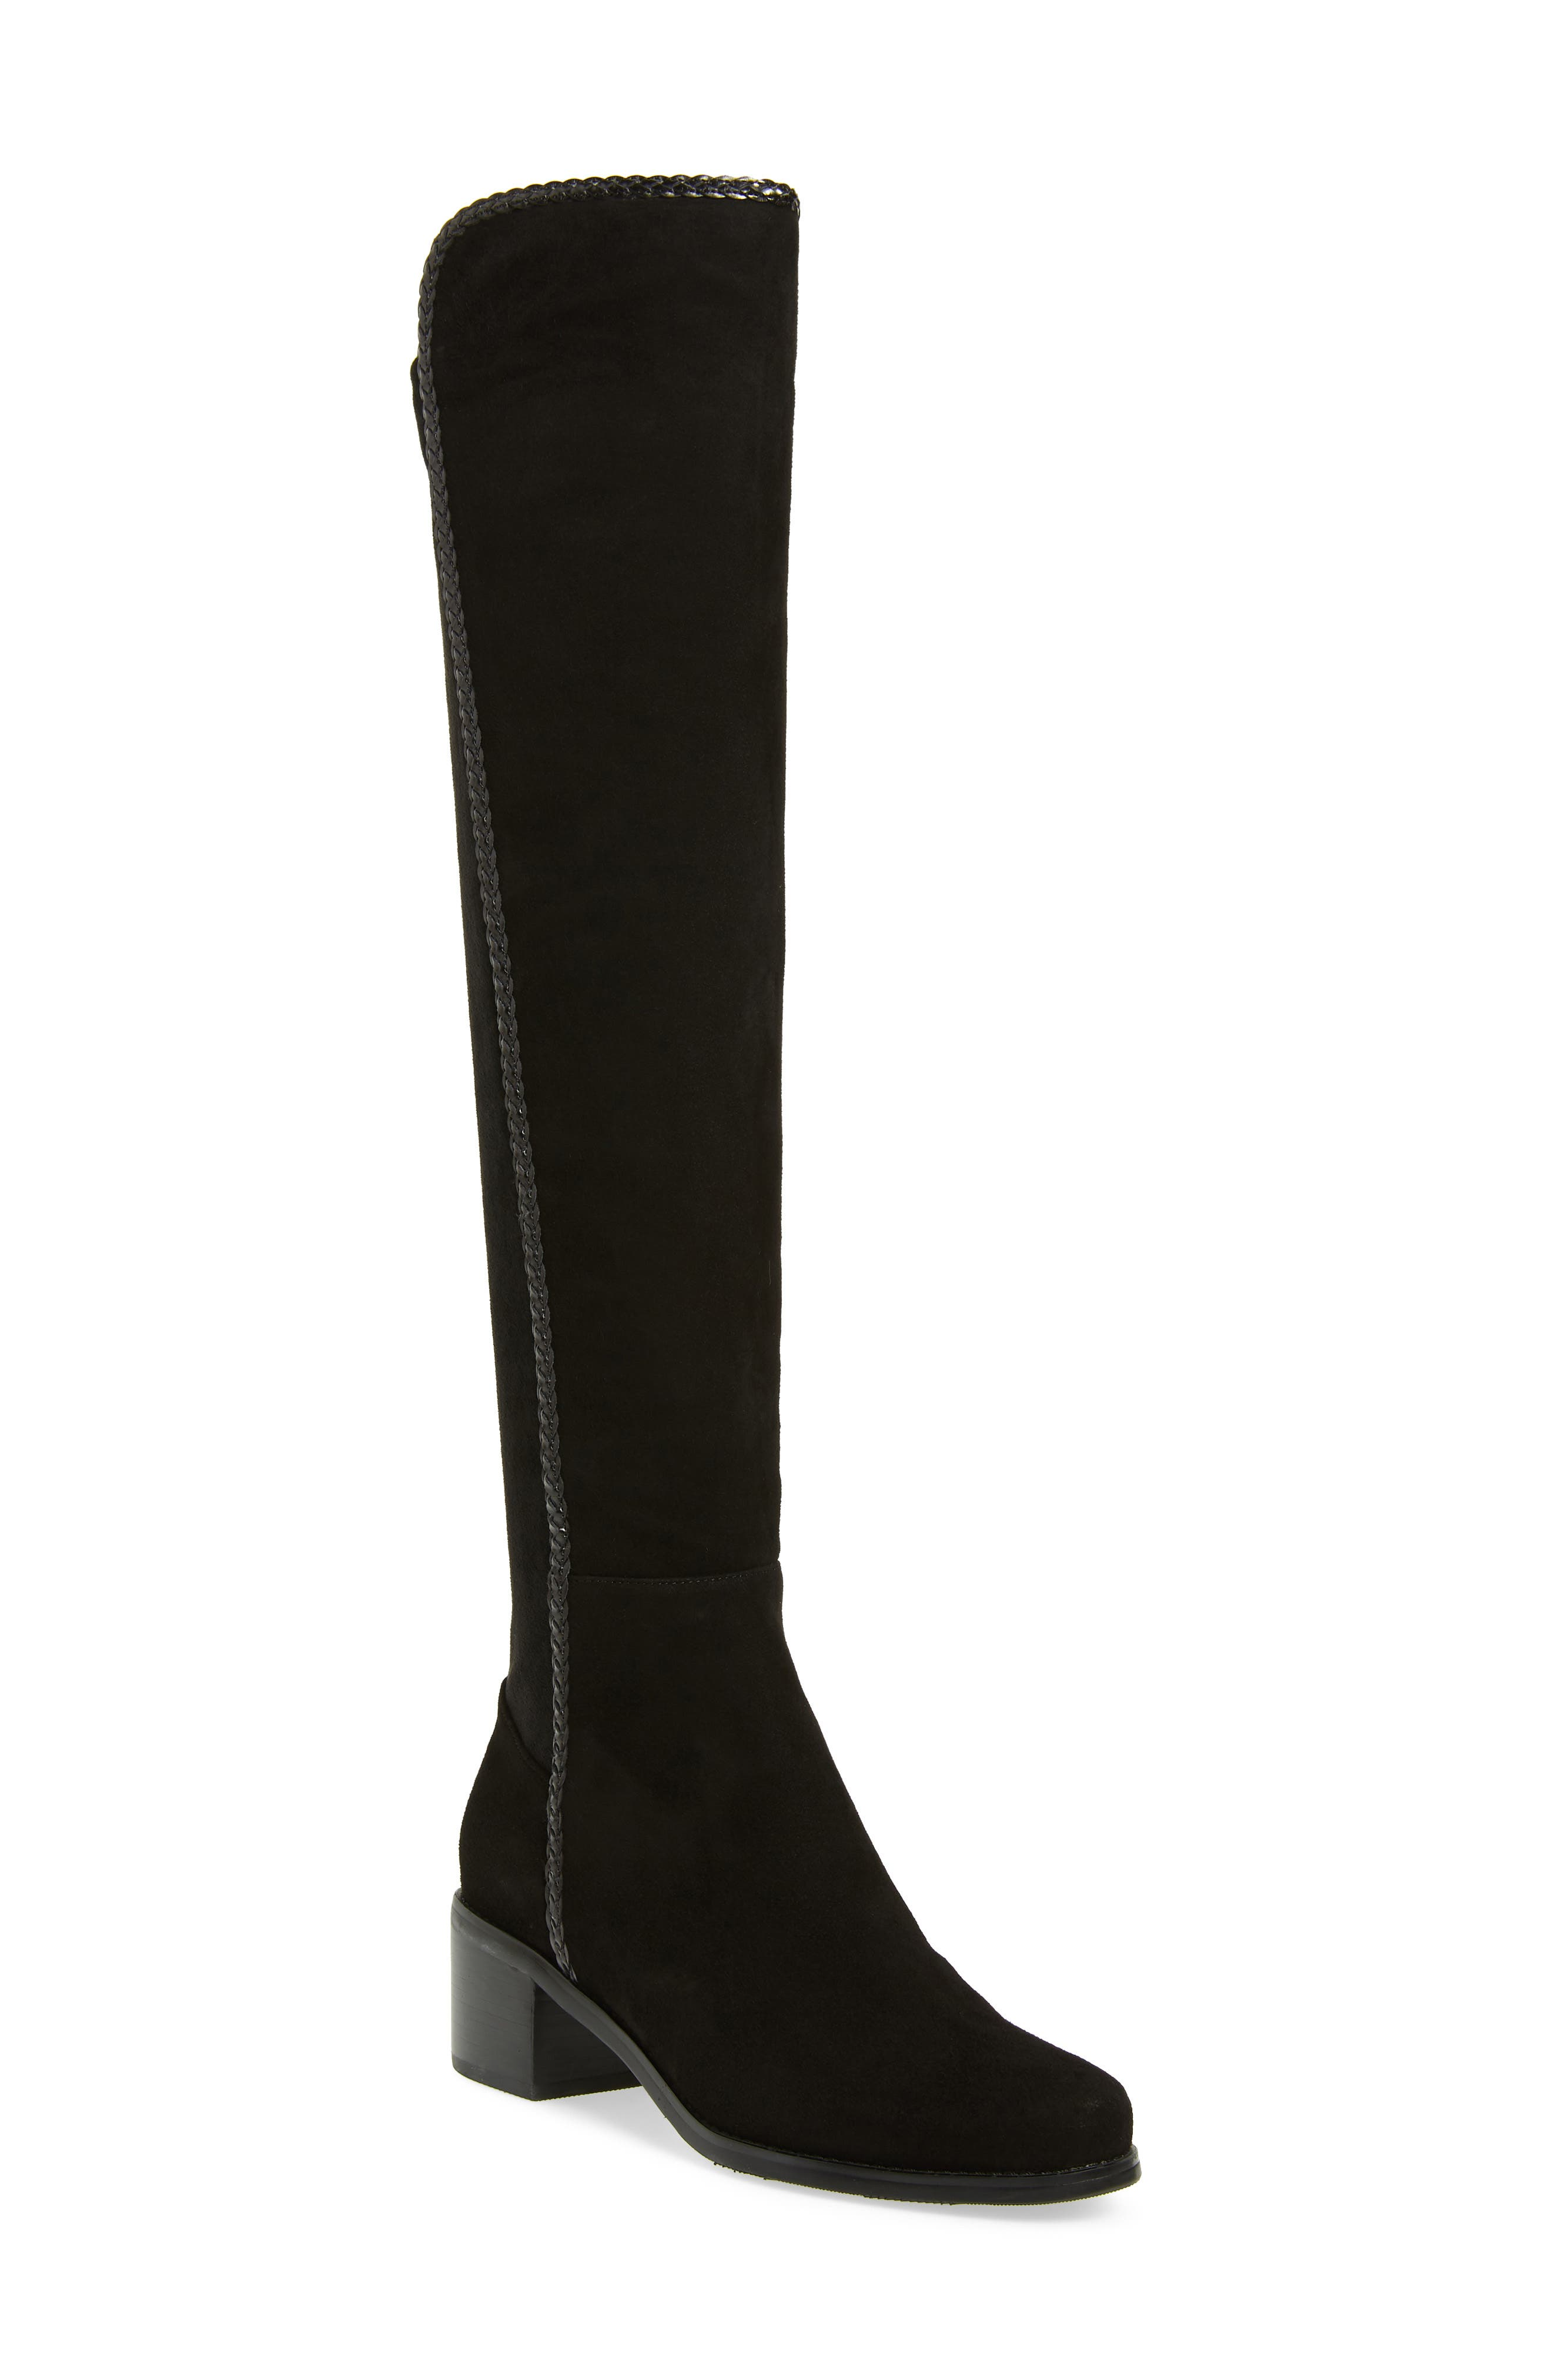 Florence Waterproof Over the Knee Boot,                         Main,                         color, BLACK SUEDE